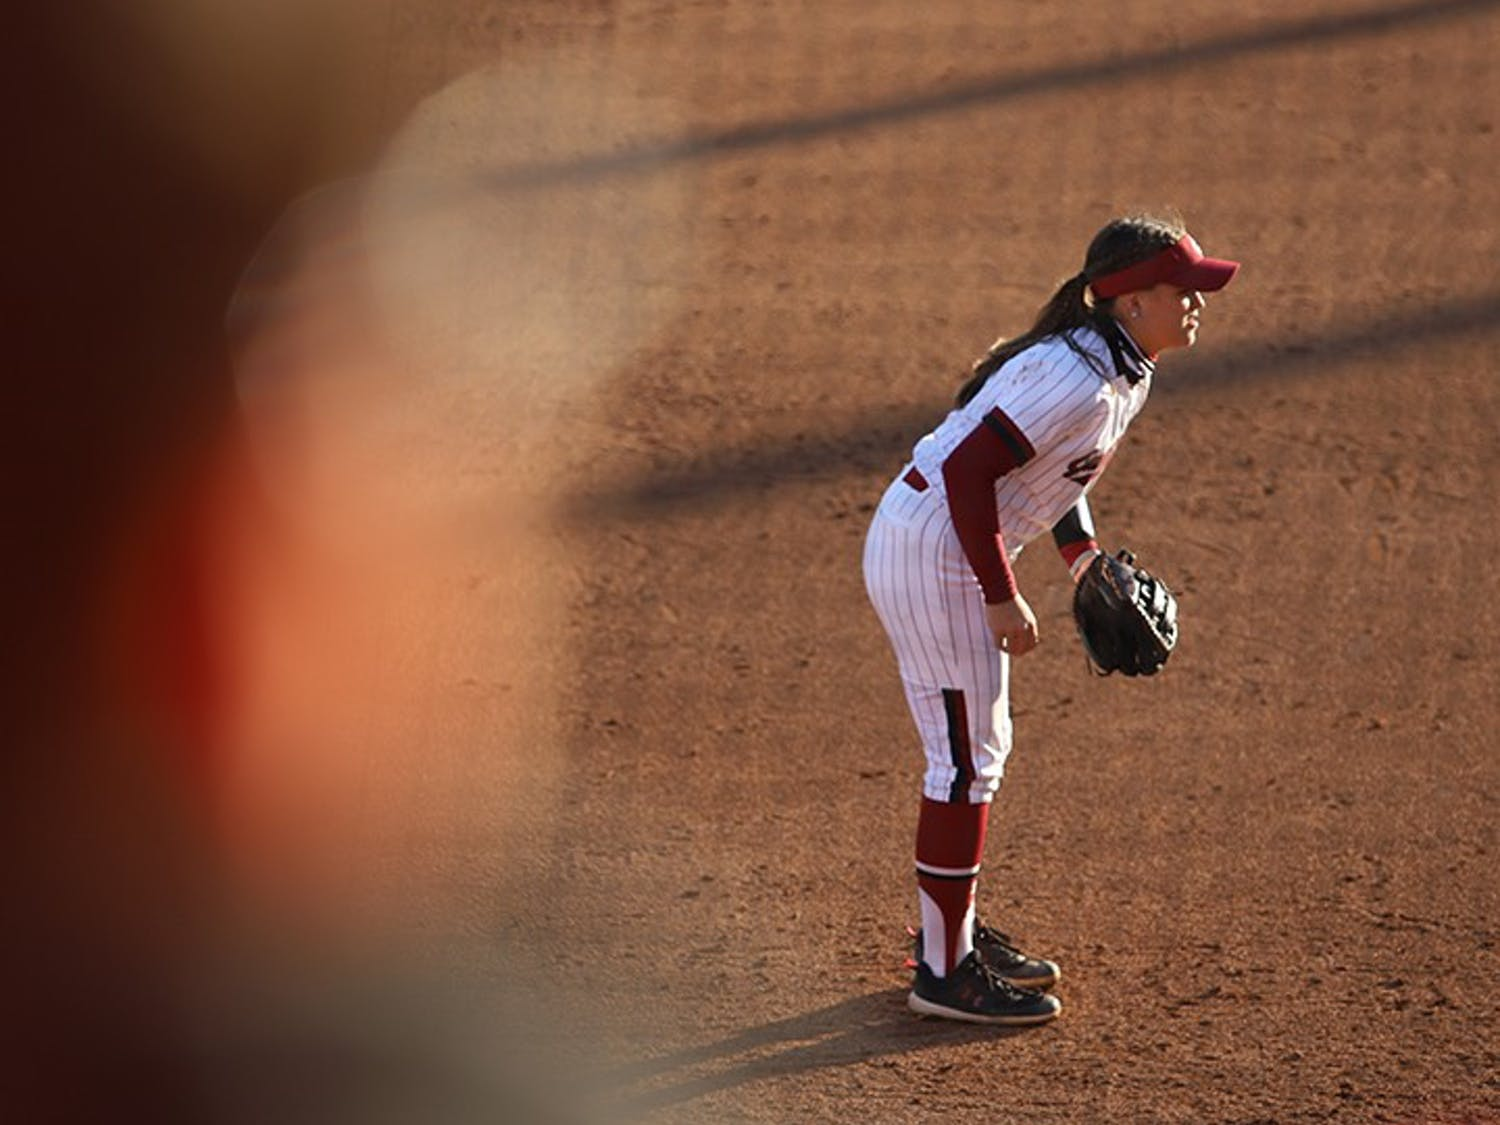 Freshman infielder Maddie Gallagher watches the batter, ready to catch the ball, while her teammate prepares to pitch.